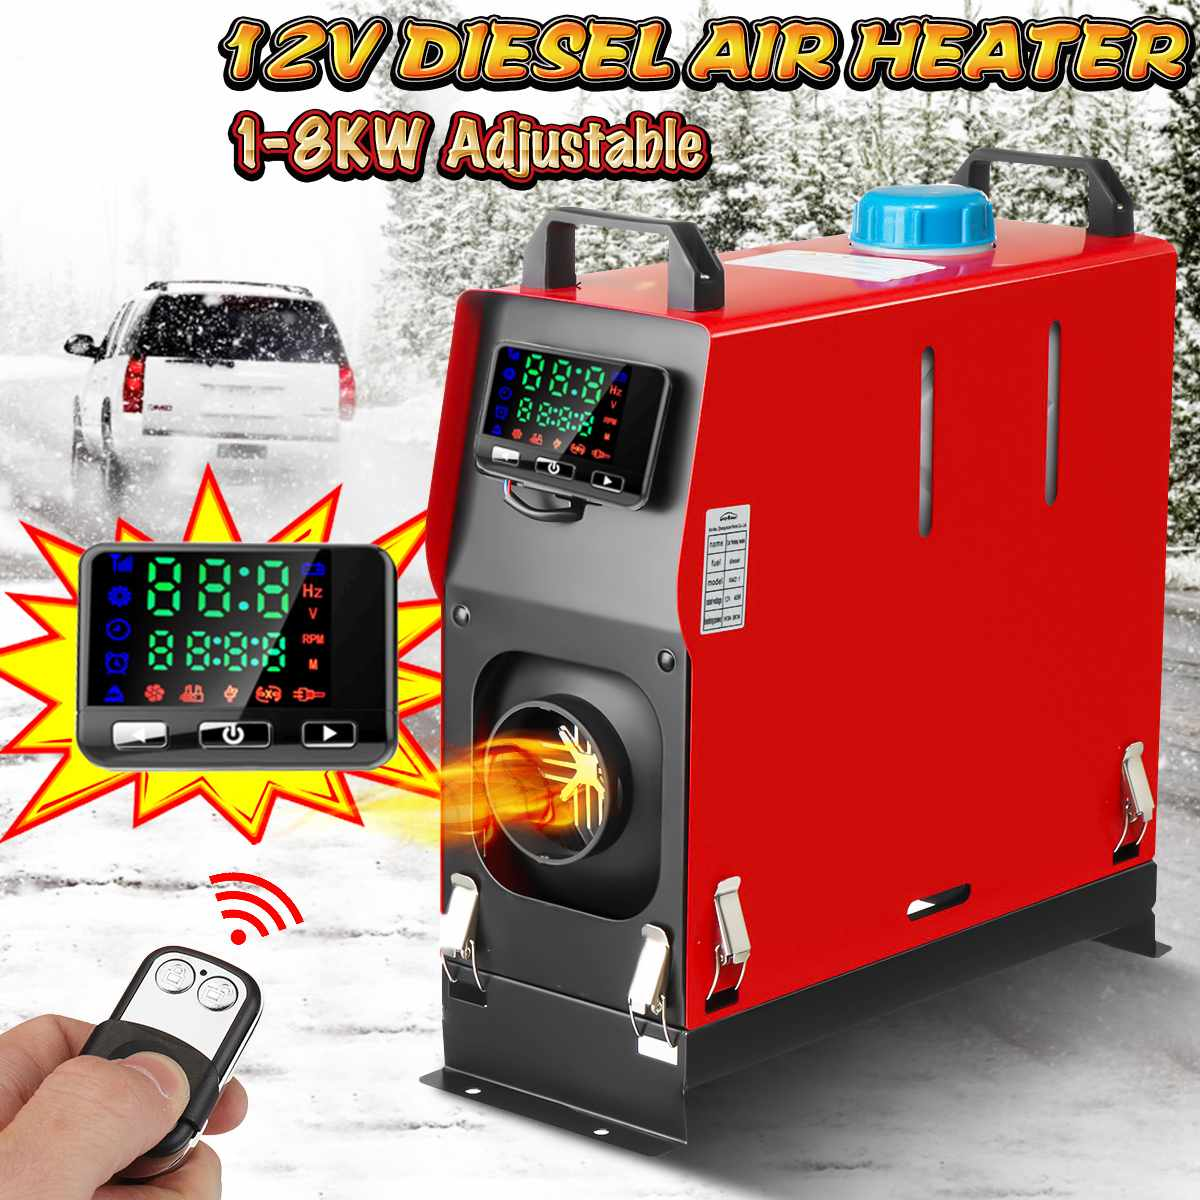 All In One 1-8KW 12V Adjustable Car Diesels Air Heater One Hole Car Heater For Trucks Motor-Homes Boats Bus+LCD Key Switch